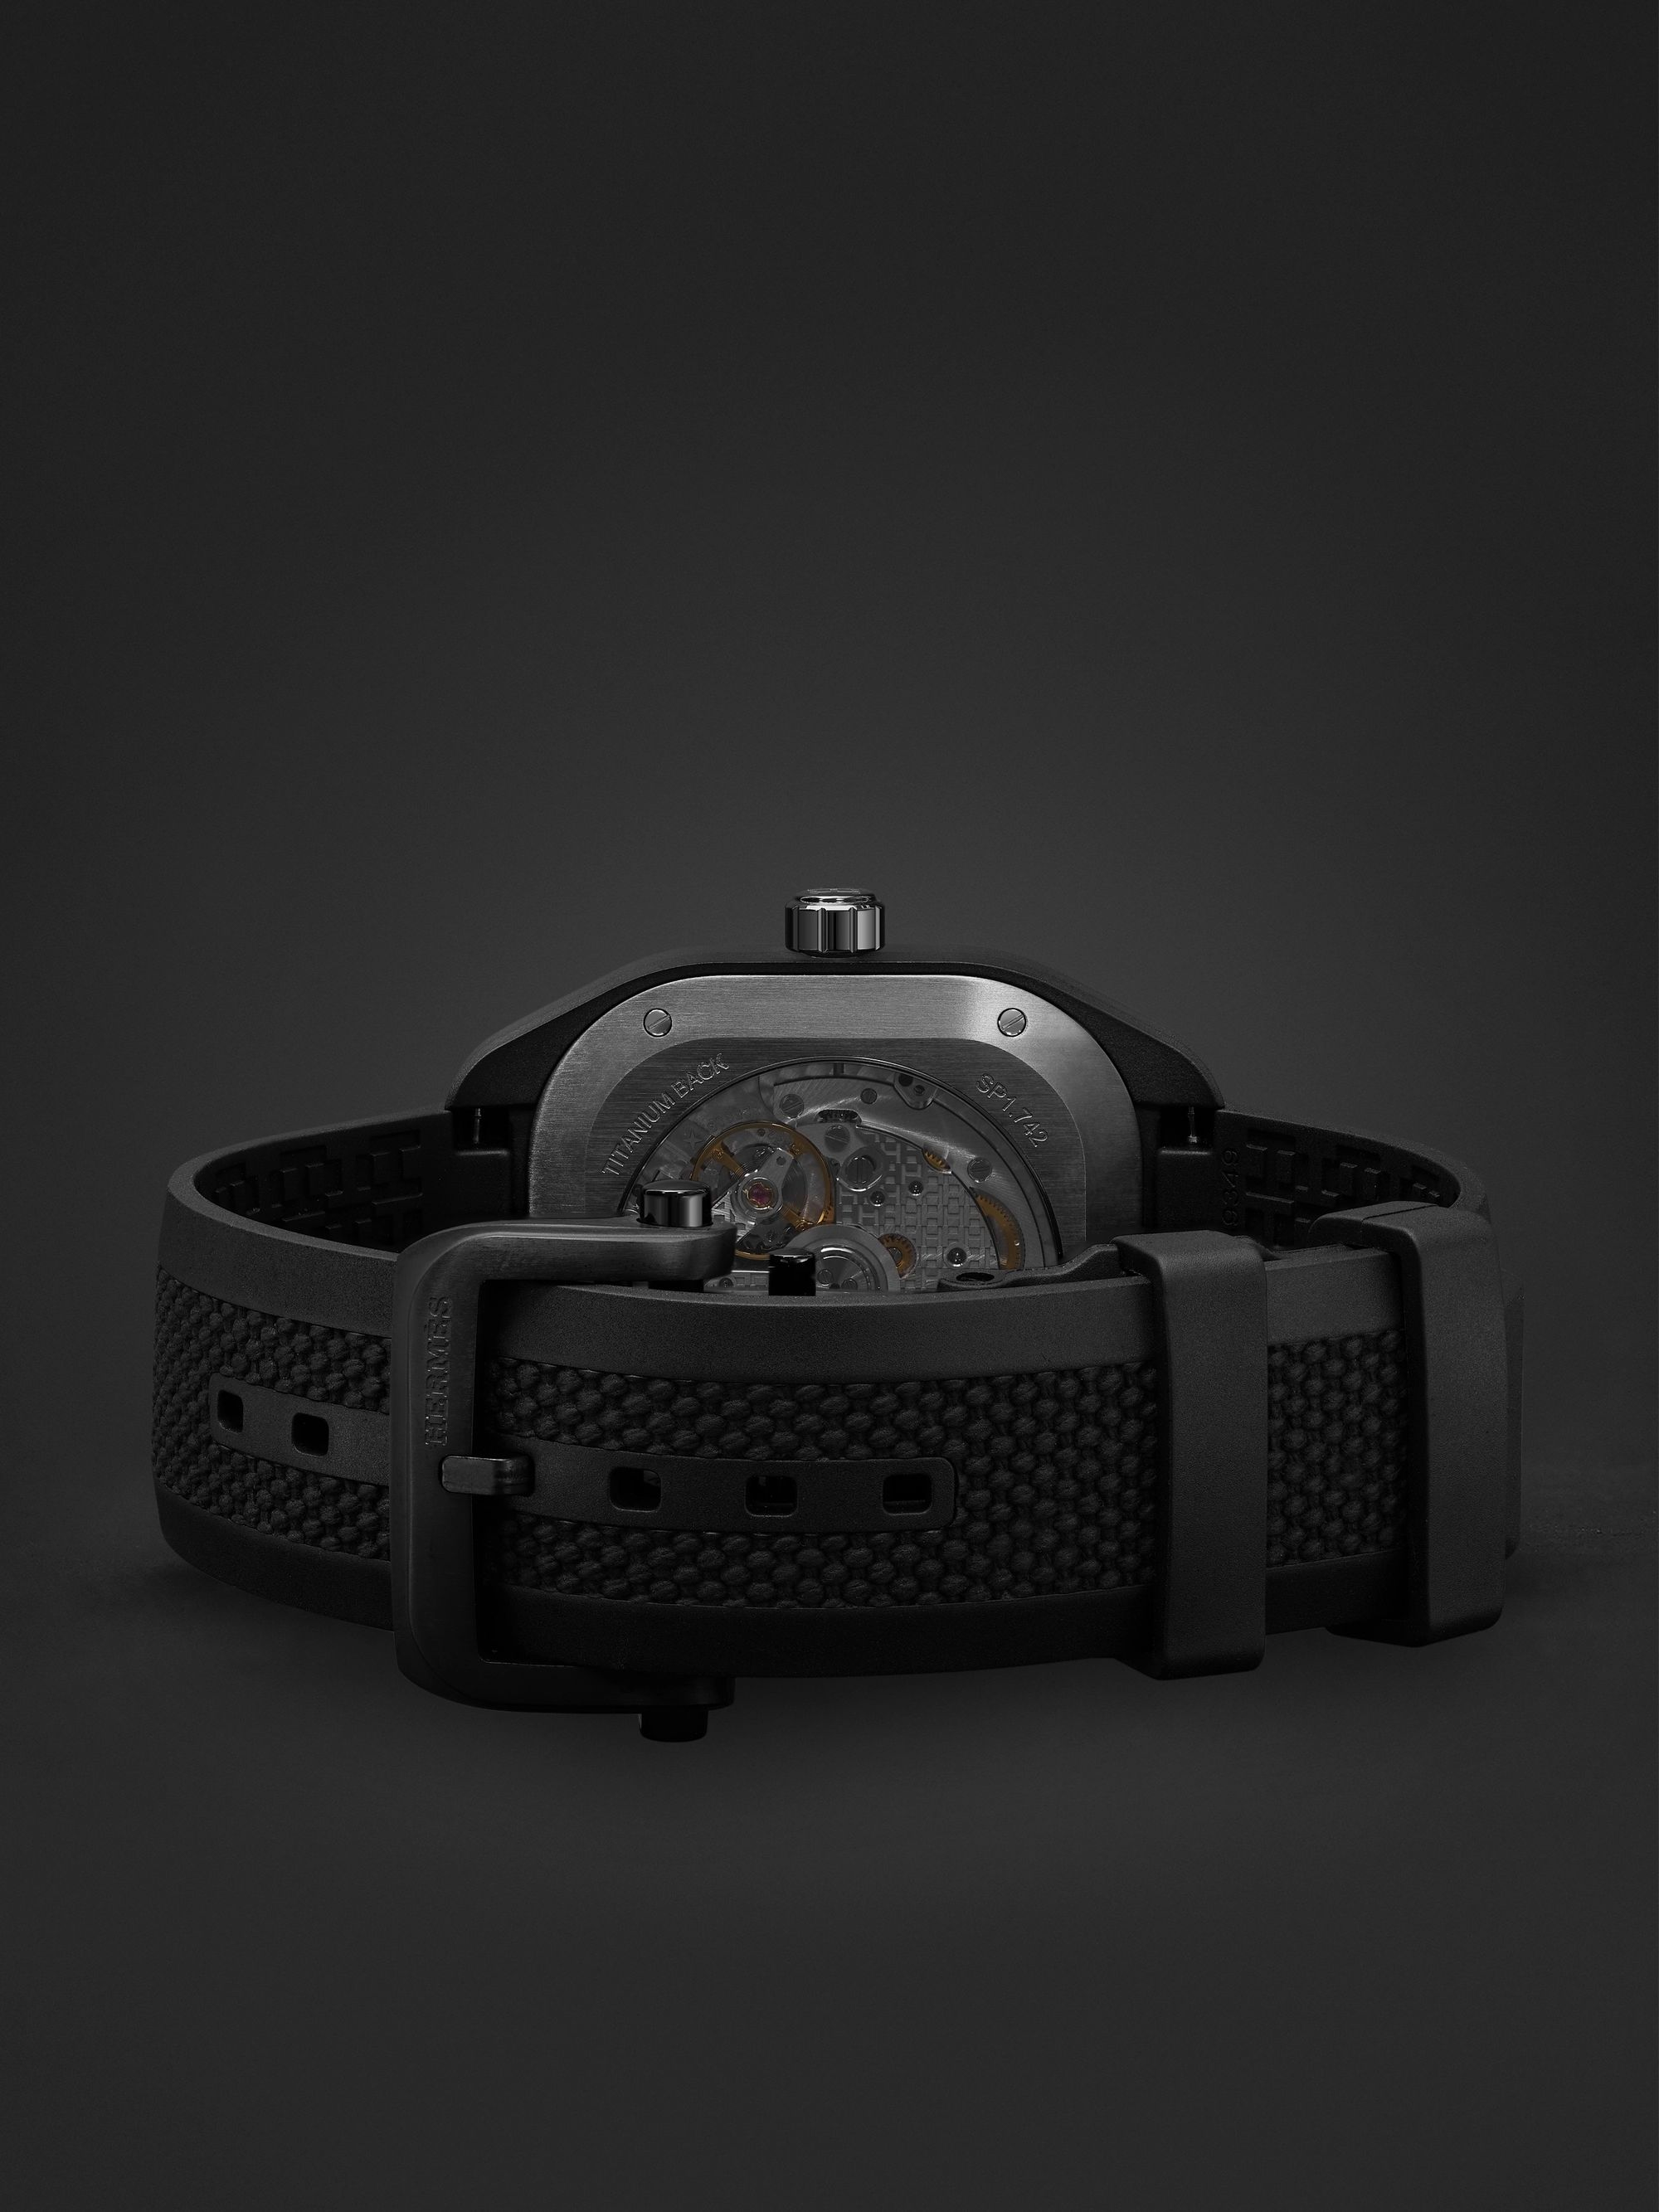 HERMÈS TIMEPIECES H08 Automatic 39mm Graphene and Rubber Watch, Ref. No. 049433WW00